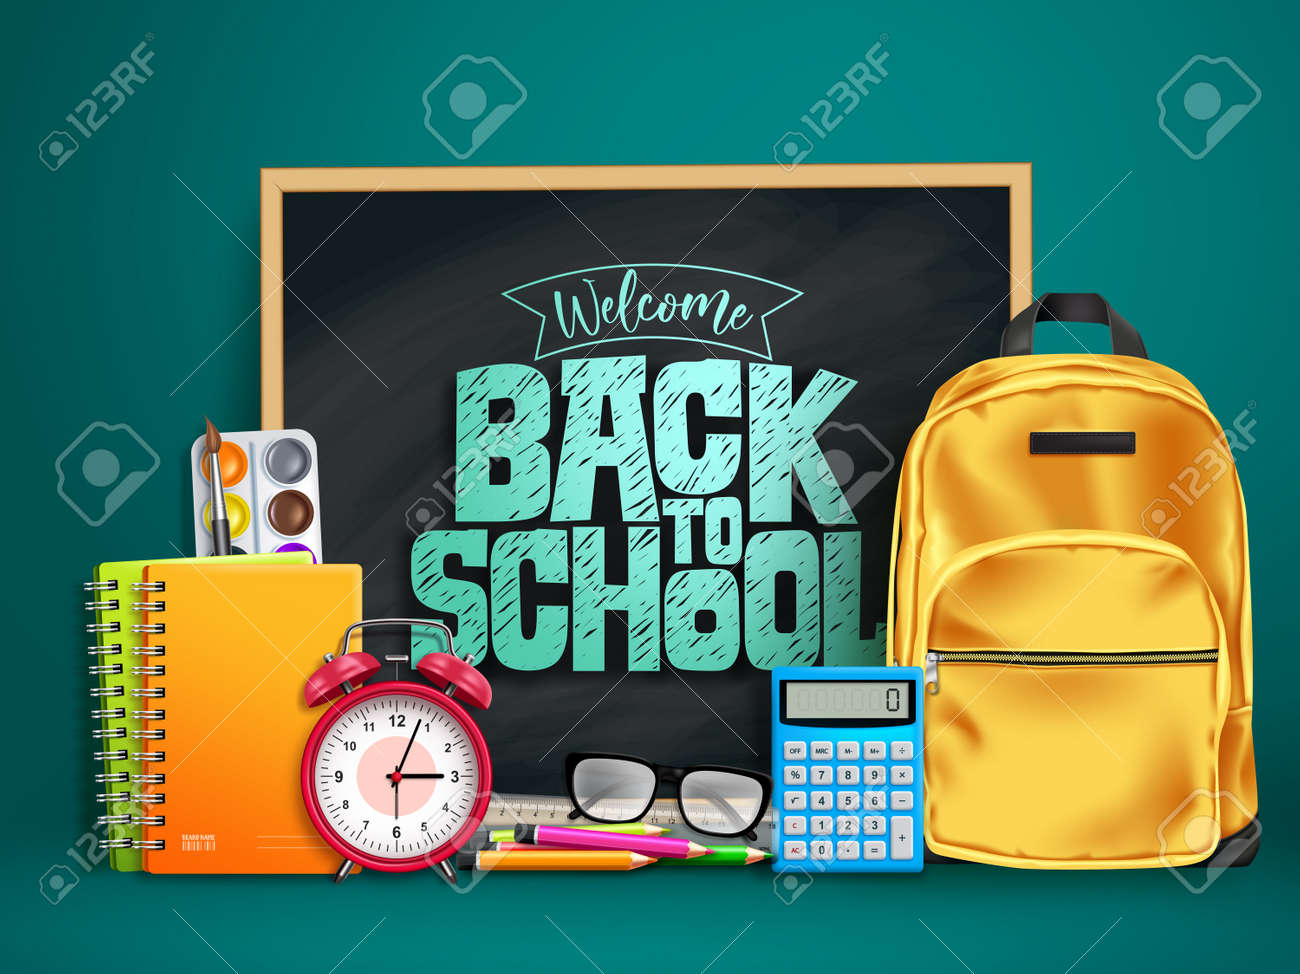 Back to school vector design. Welcome back to school text in chalkboard space with 3d educational supplies like bag, calculator, alarm clock and notebook in green background. Vector illustration - 168460253